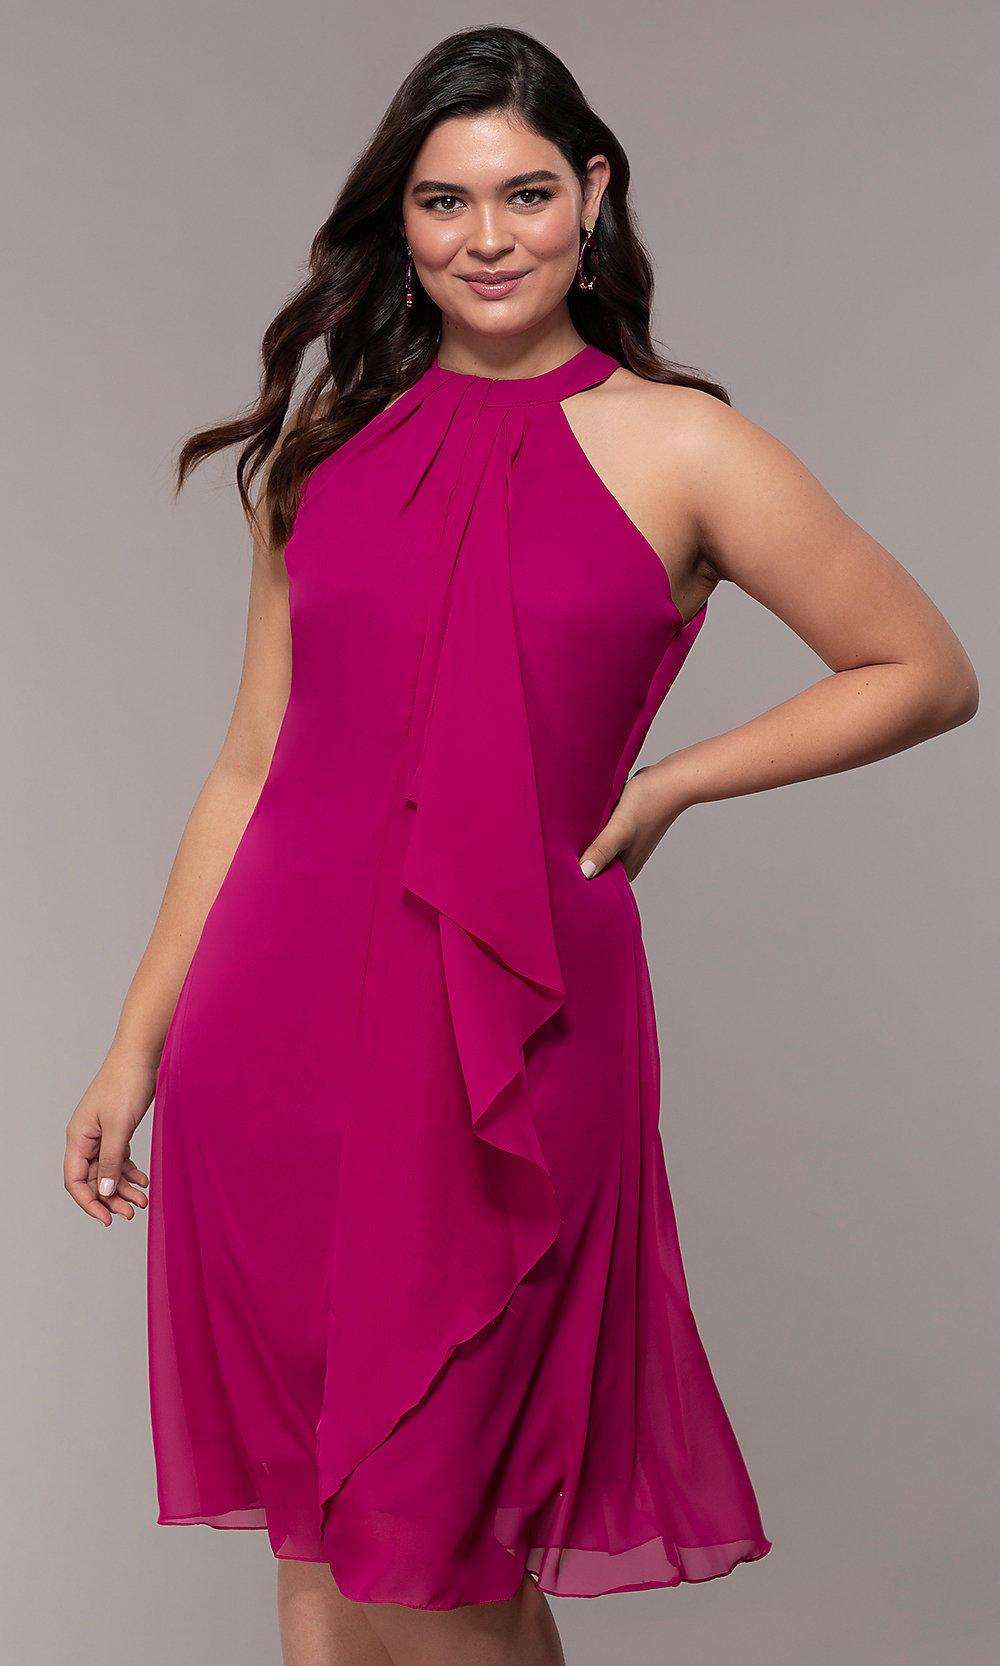 Short High-Neck Wedding Guest Plus-Size Shift Dress